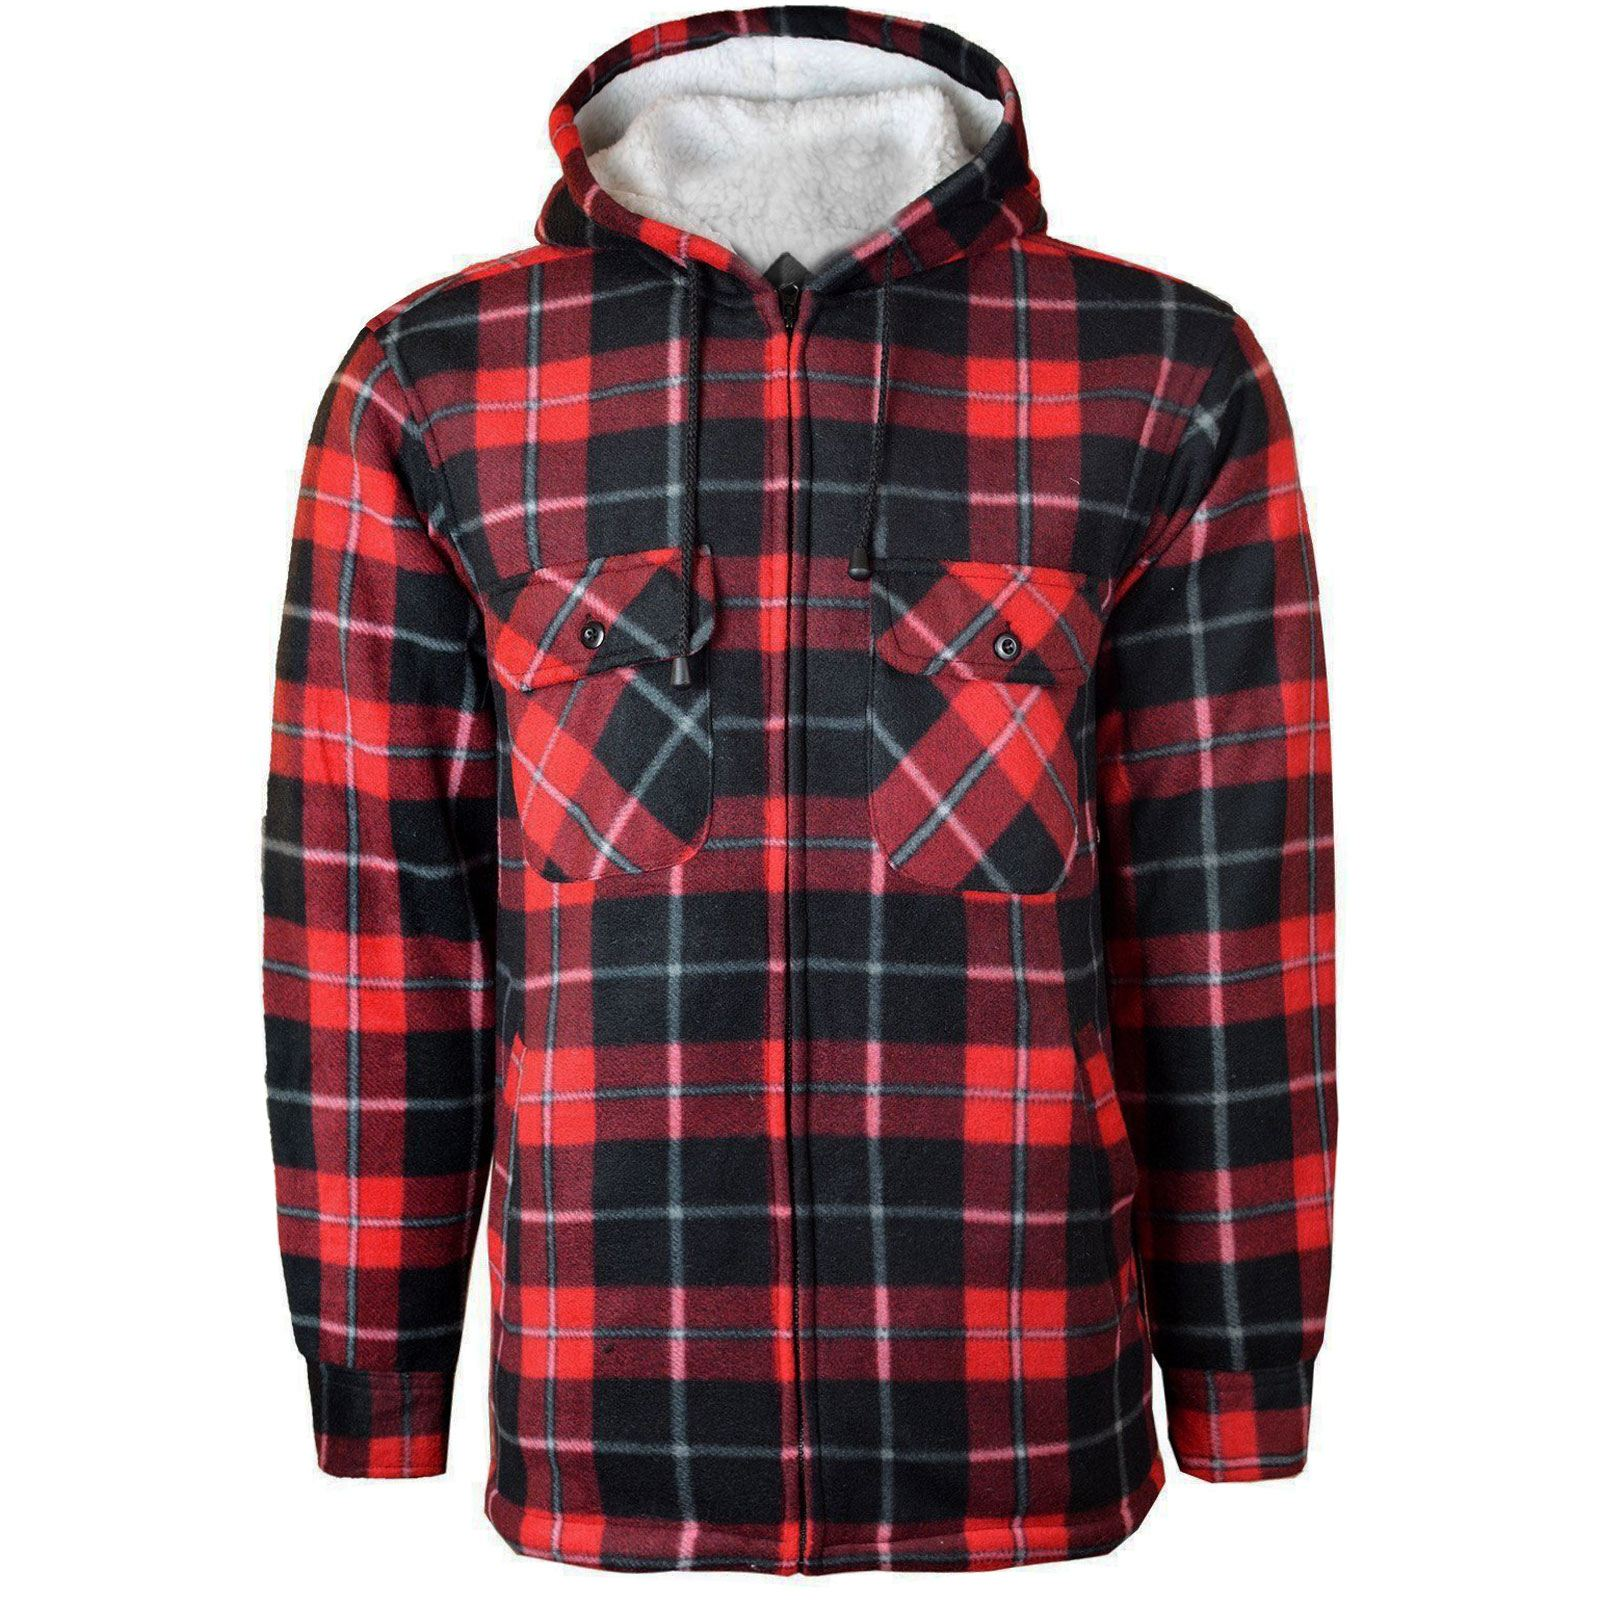 Superdry Mens Lumberjack Twill Shirt In Bolt Check Red Mix Now With Delivery From The Official